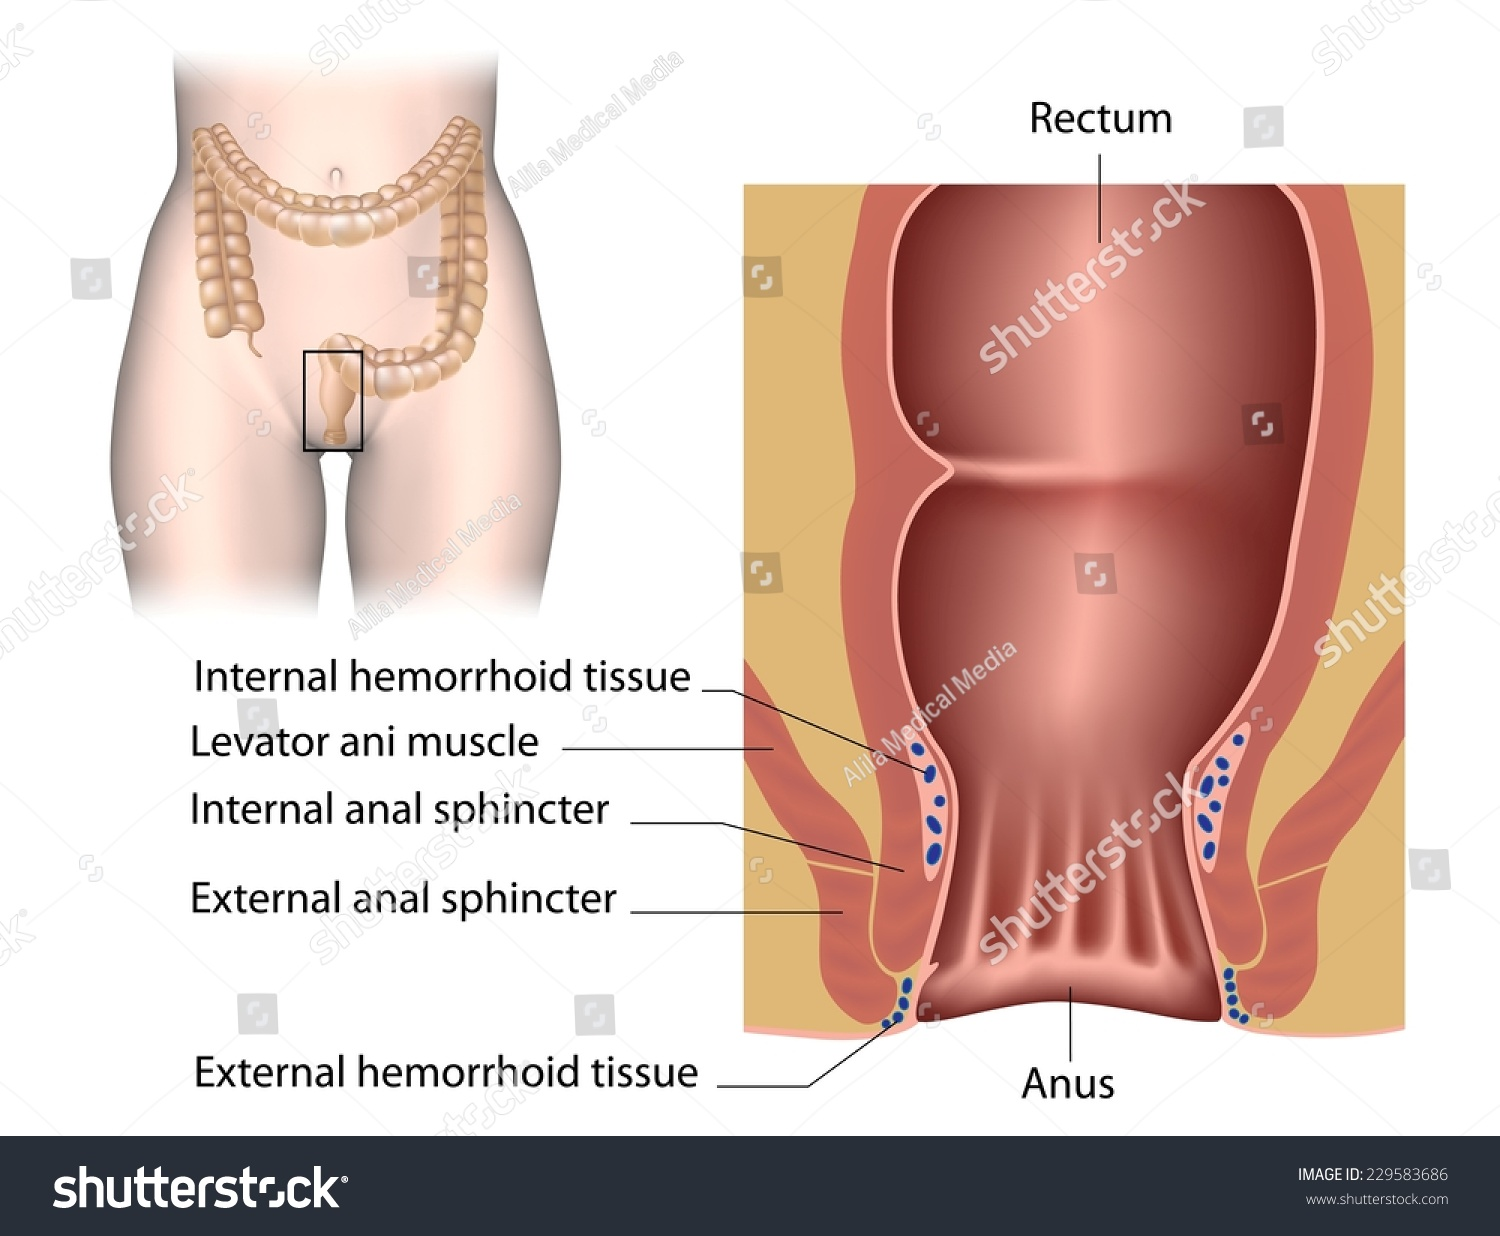 Anal Canal Anatomy Labeled Stock Illustration 229583686 Shutterstock